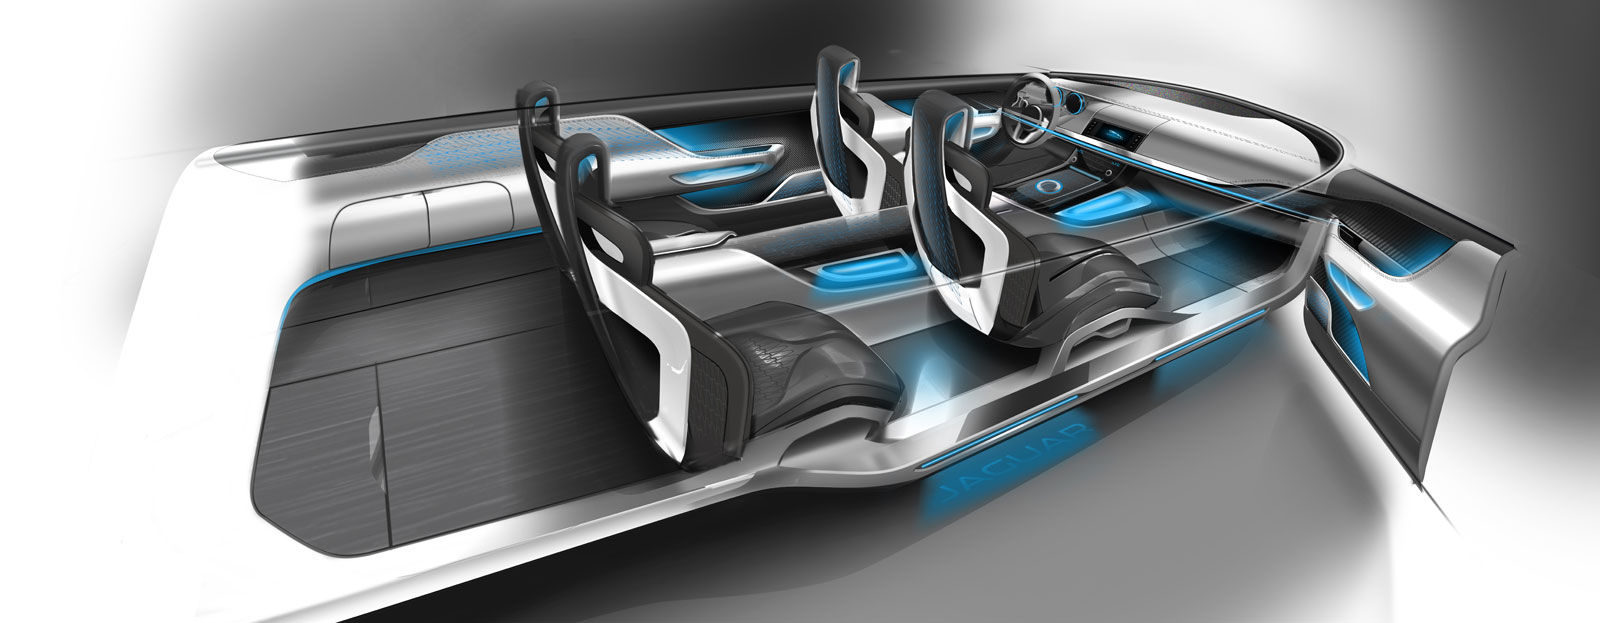 jaguar c x17 concept interior design sketch car body design. Black Bedroom Furniture Sets. Home Design Ideas